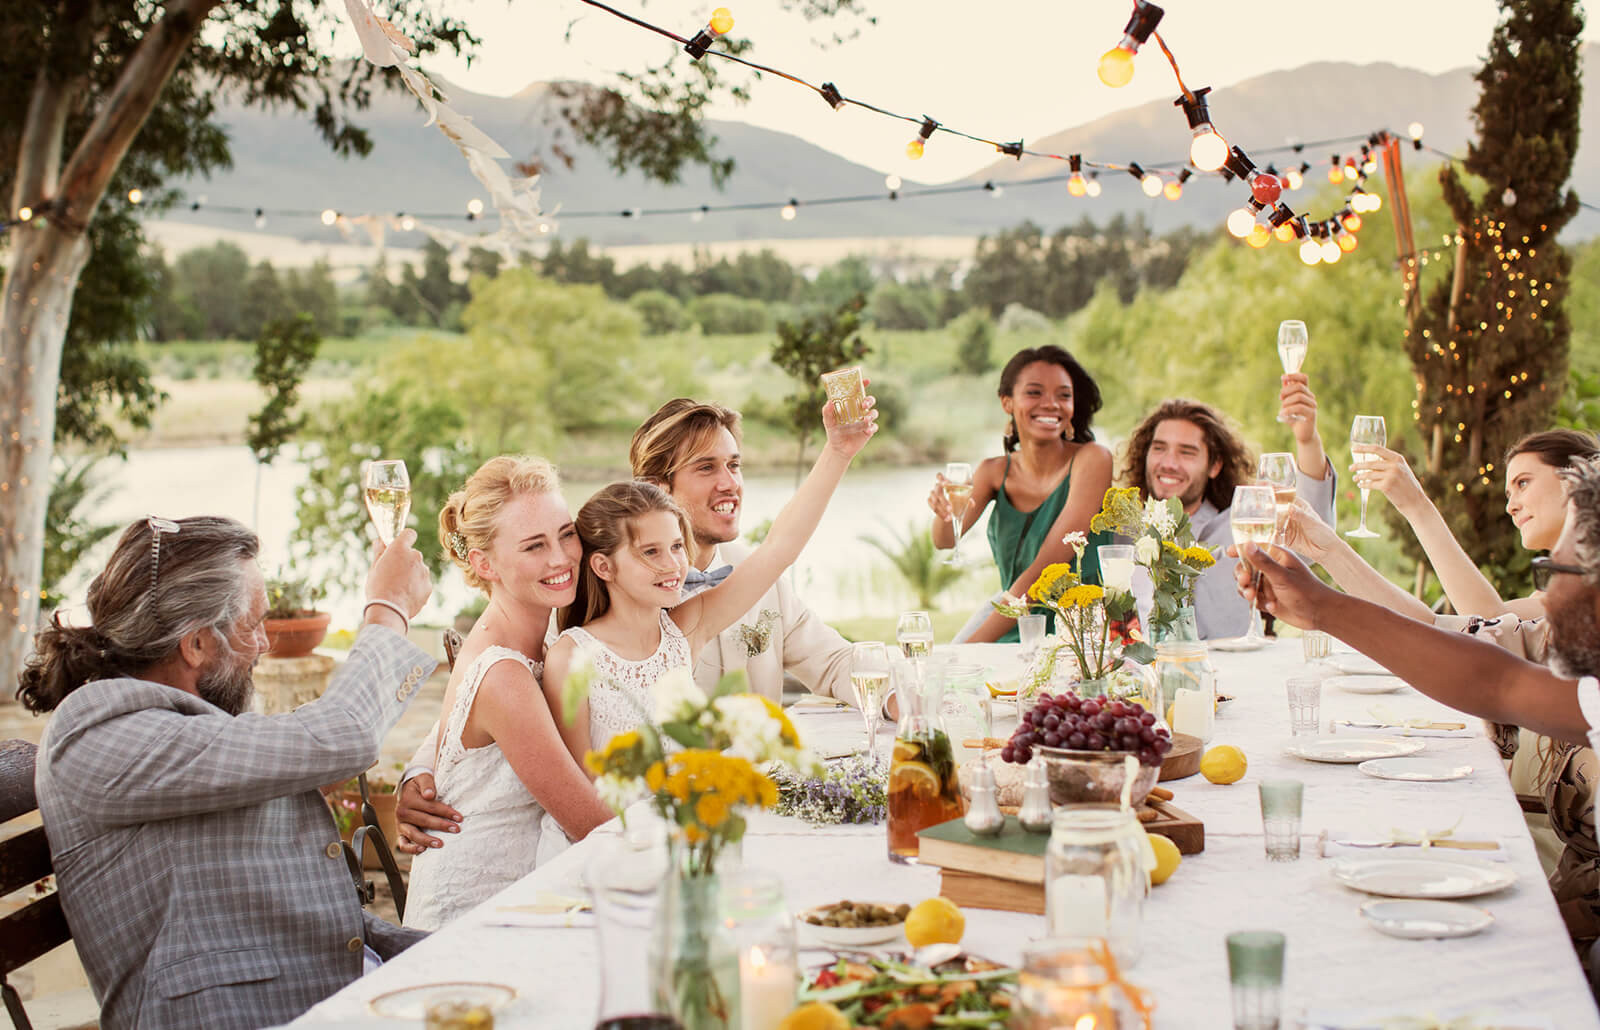 Wedding BBQ Ideas for a Fabulous Event | LoveToKnow